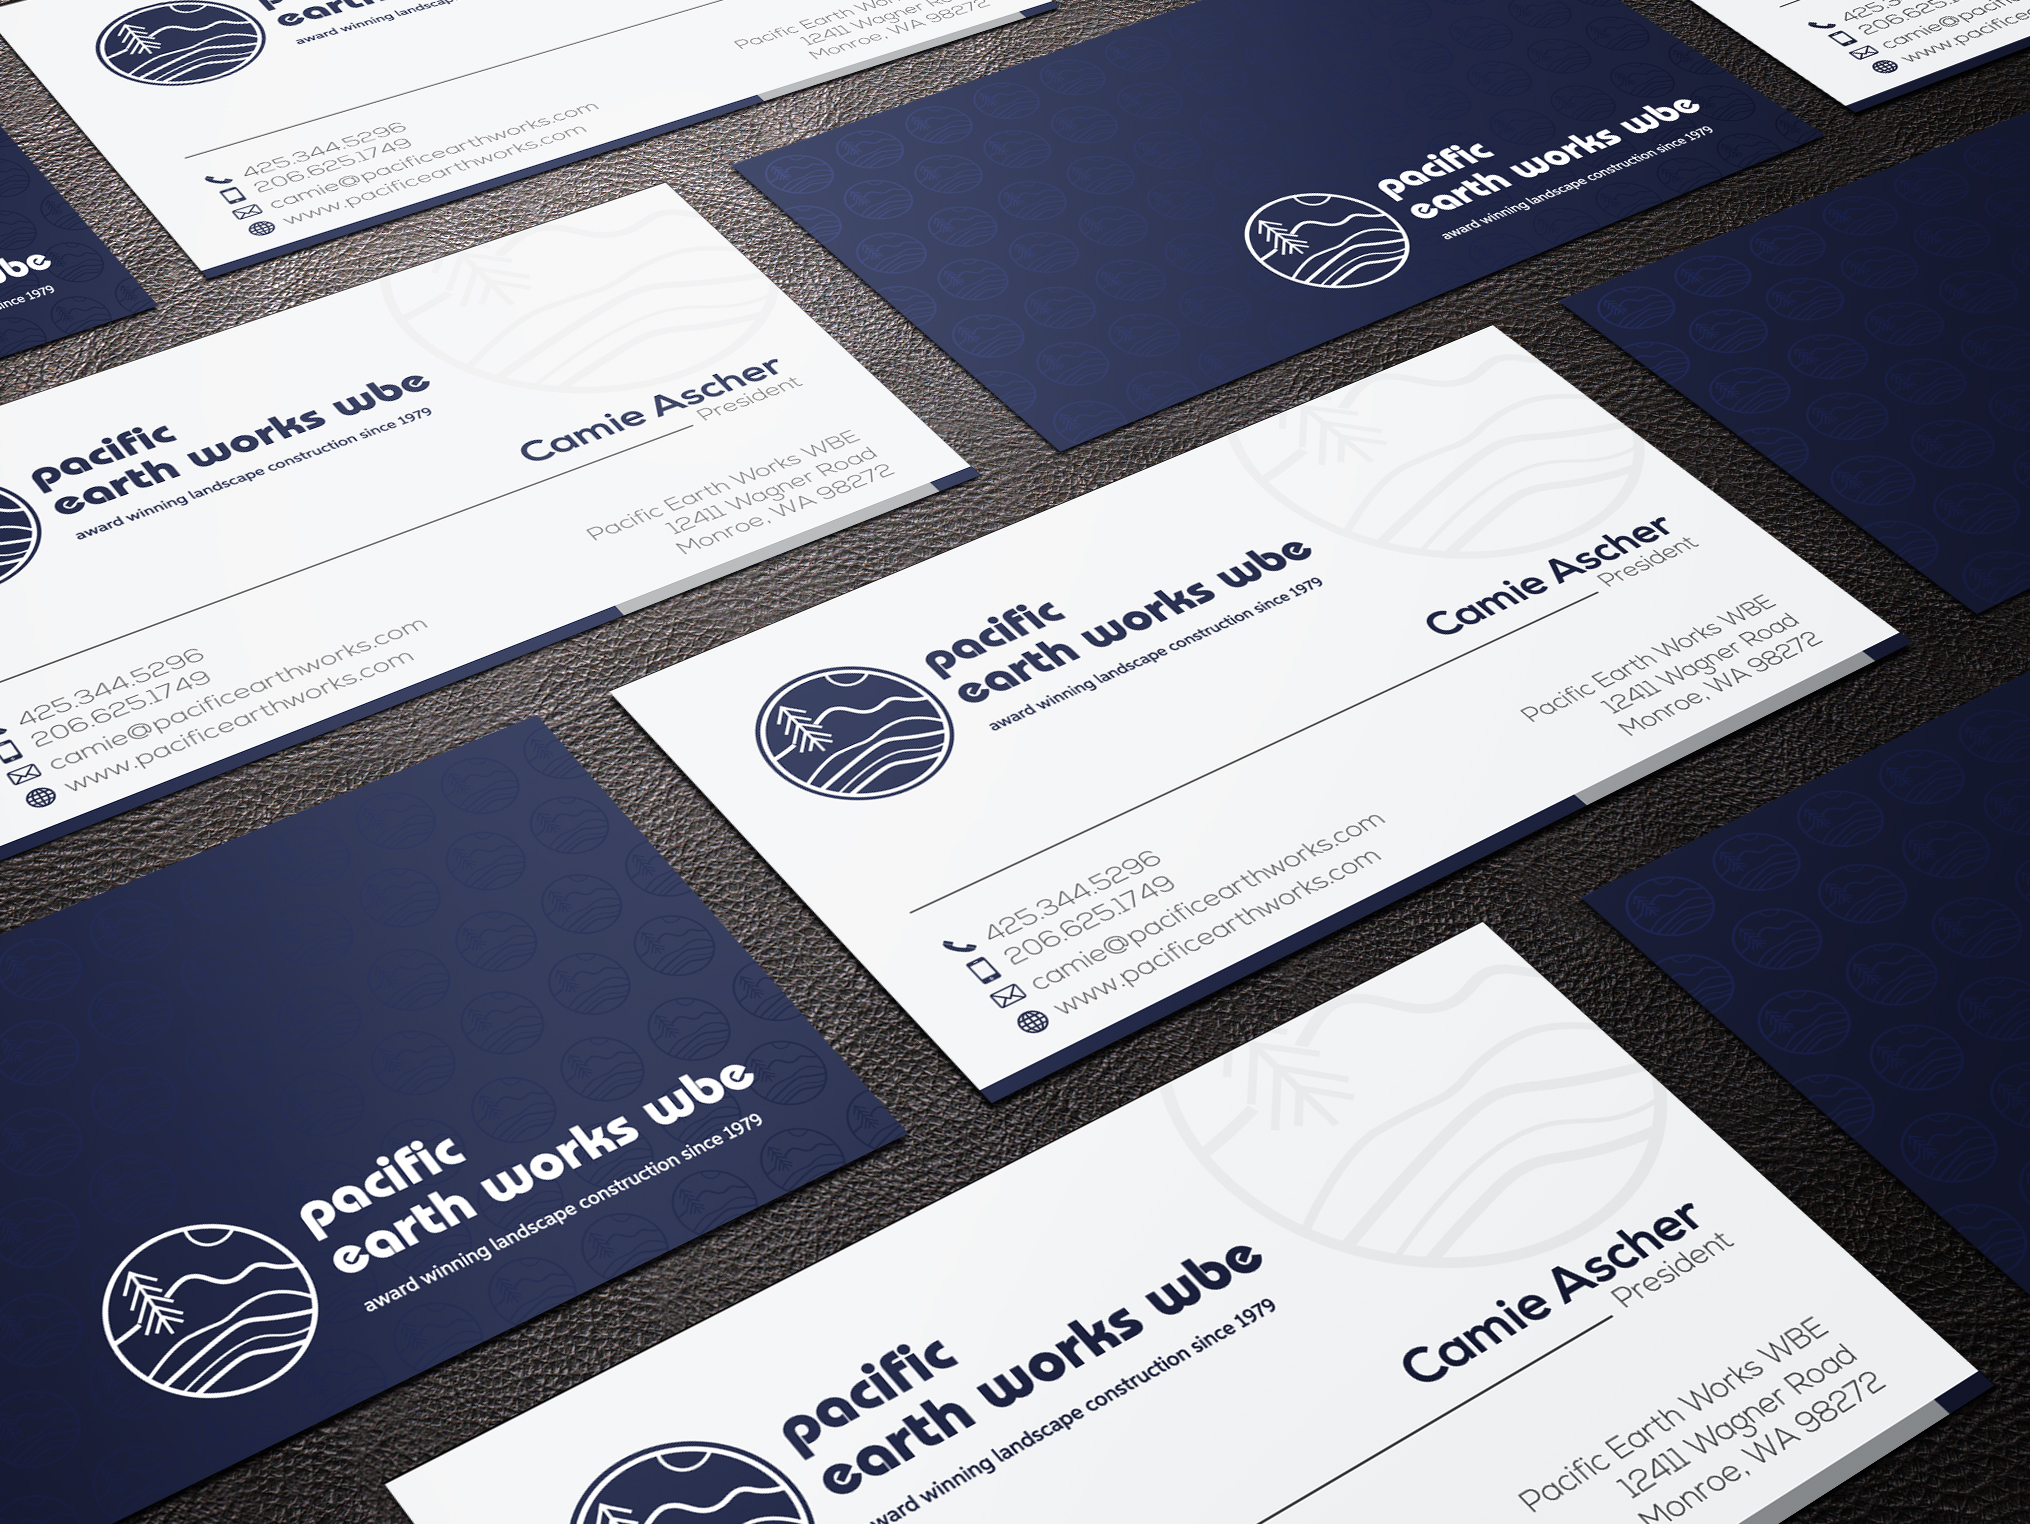 I will design modern unique professional business card designs